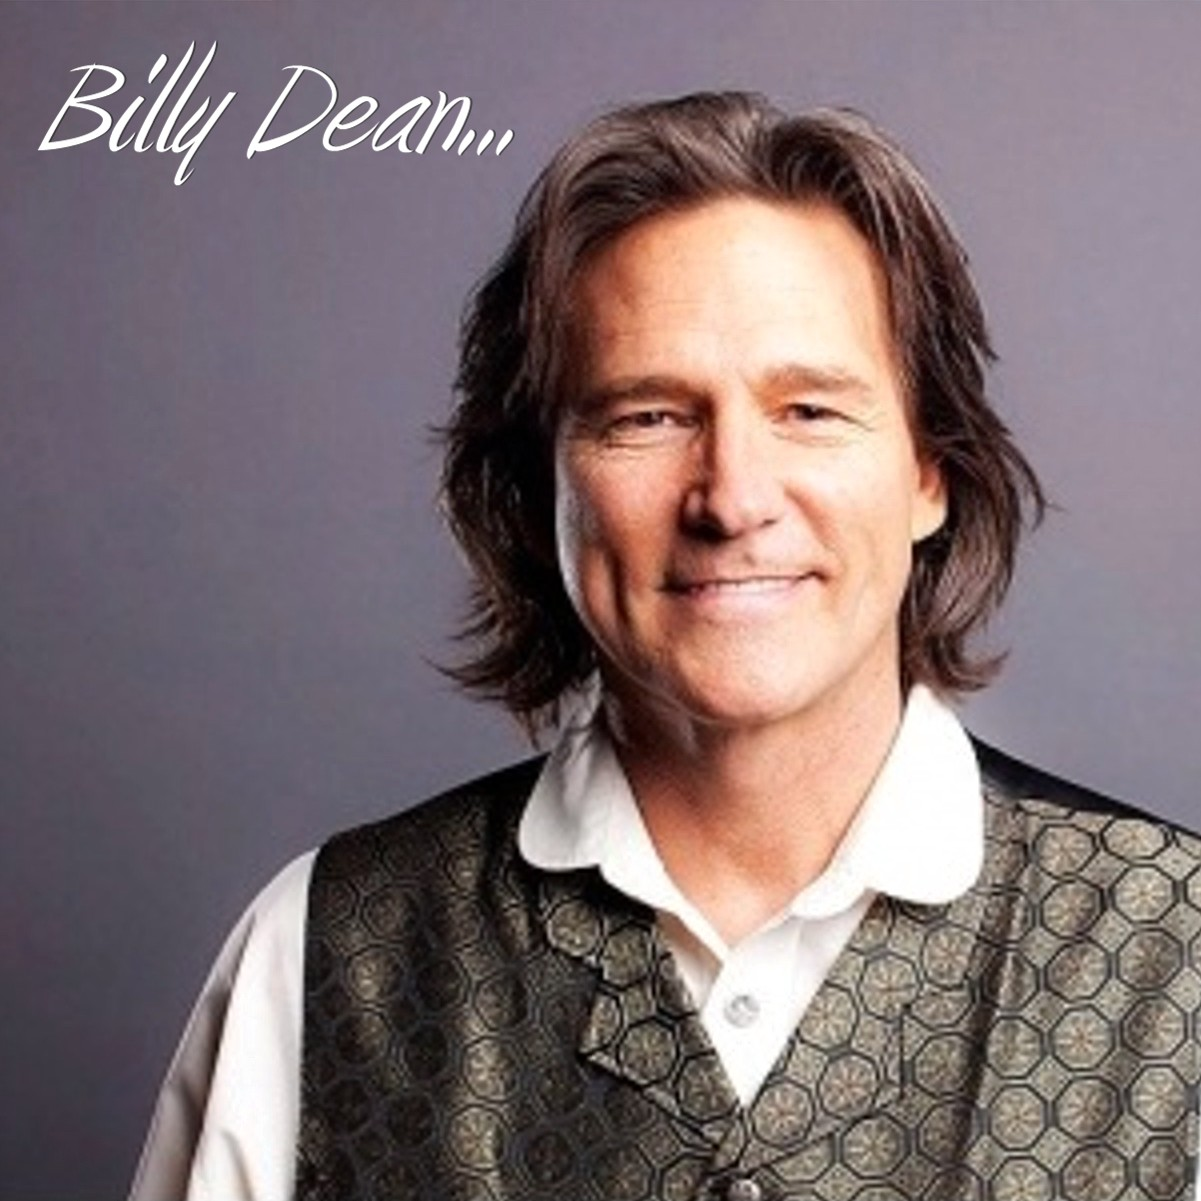 Strictly Country Magazine The Unappreciated Billy Dean